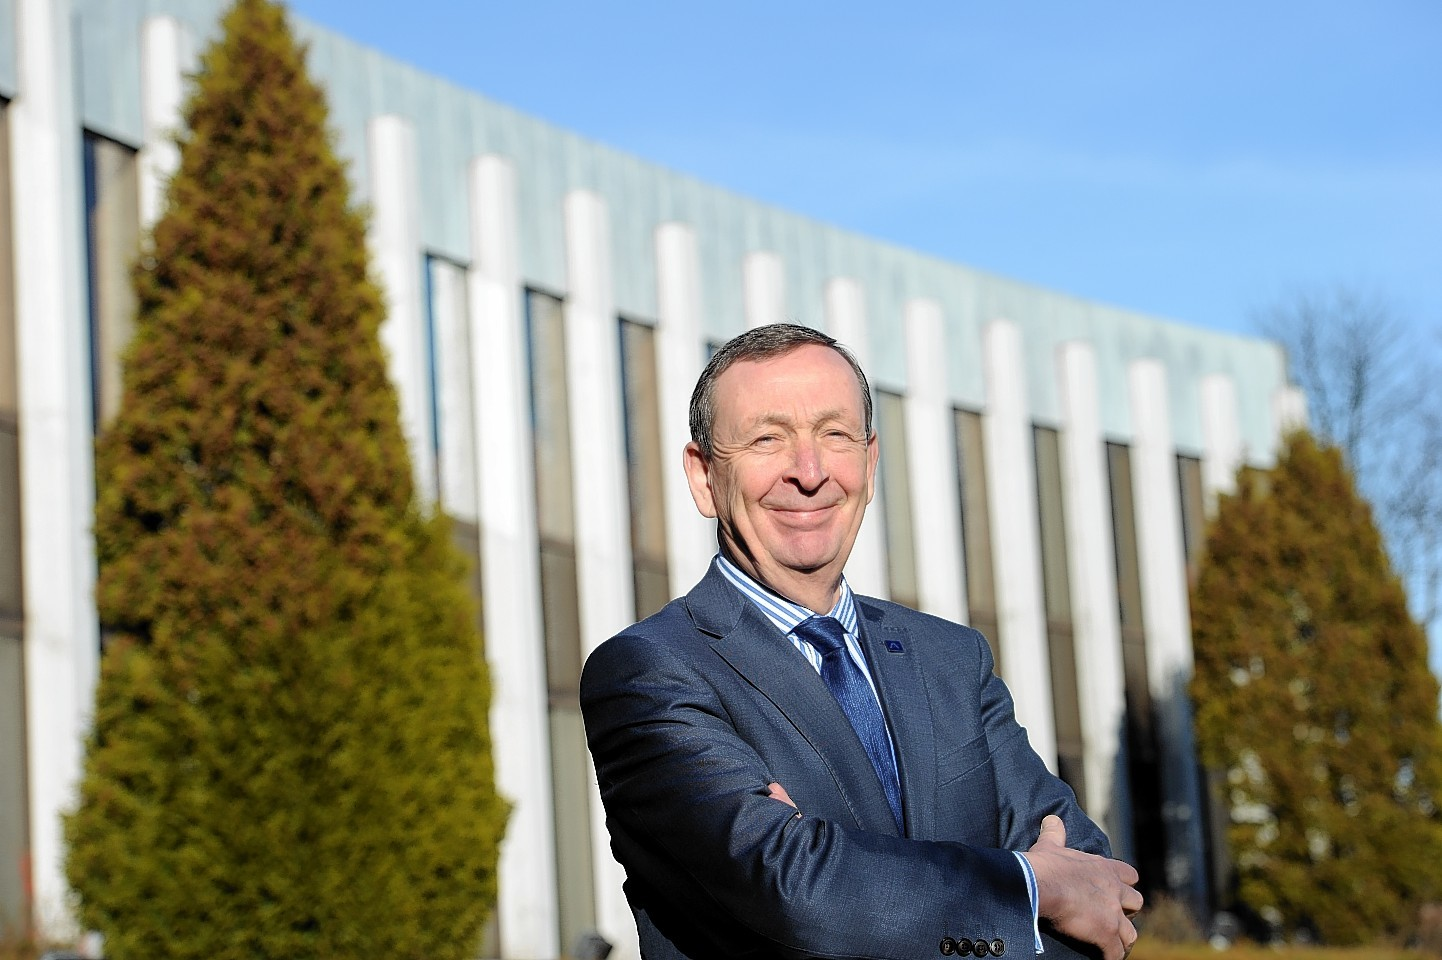 Colin Mackenzie was first appointed chief executive in 2007 but will now be replaced by Colin Mackenzie